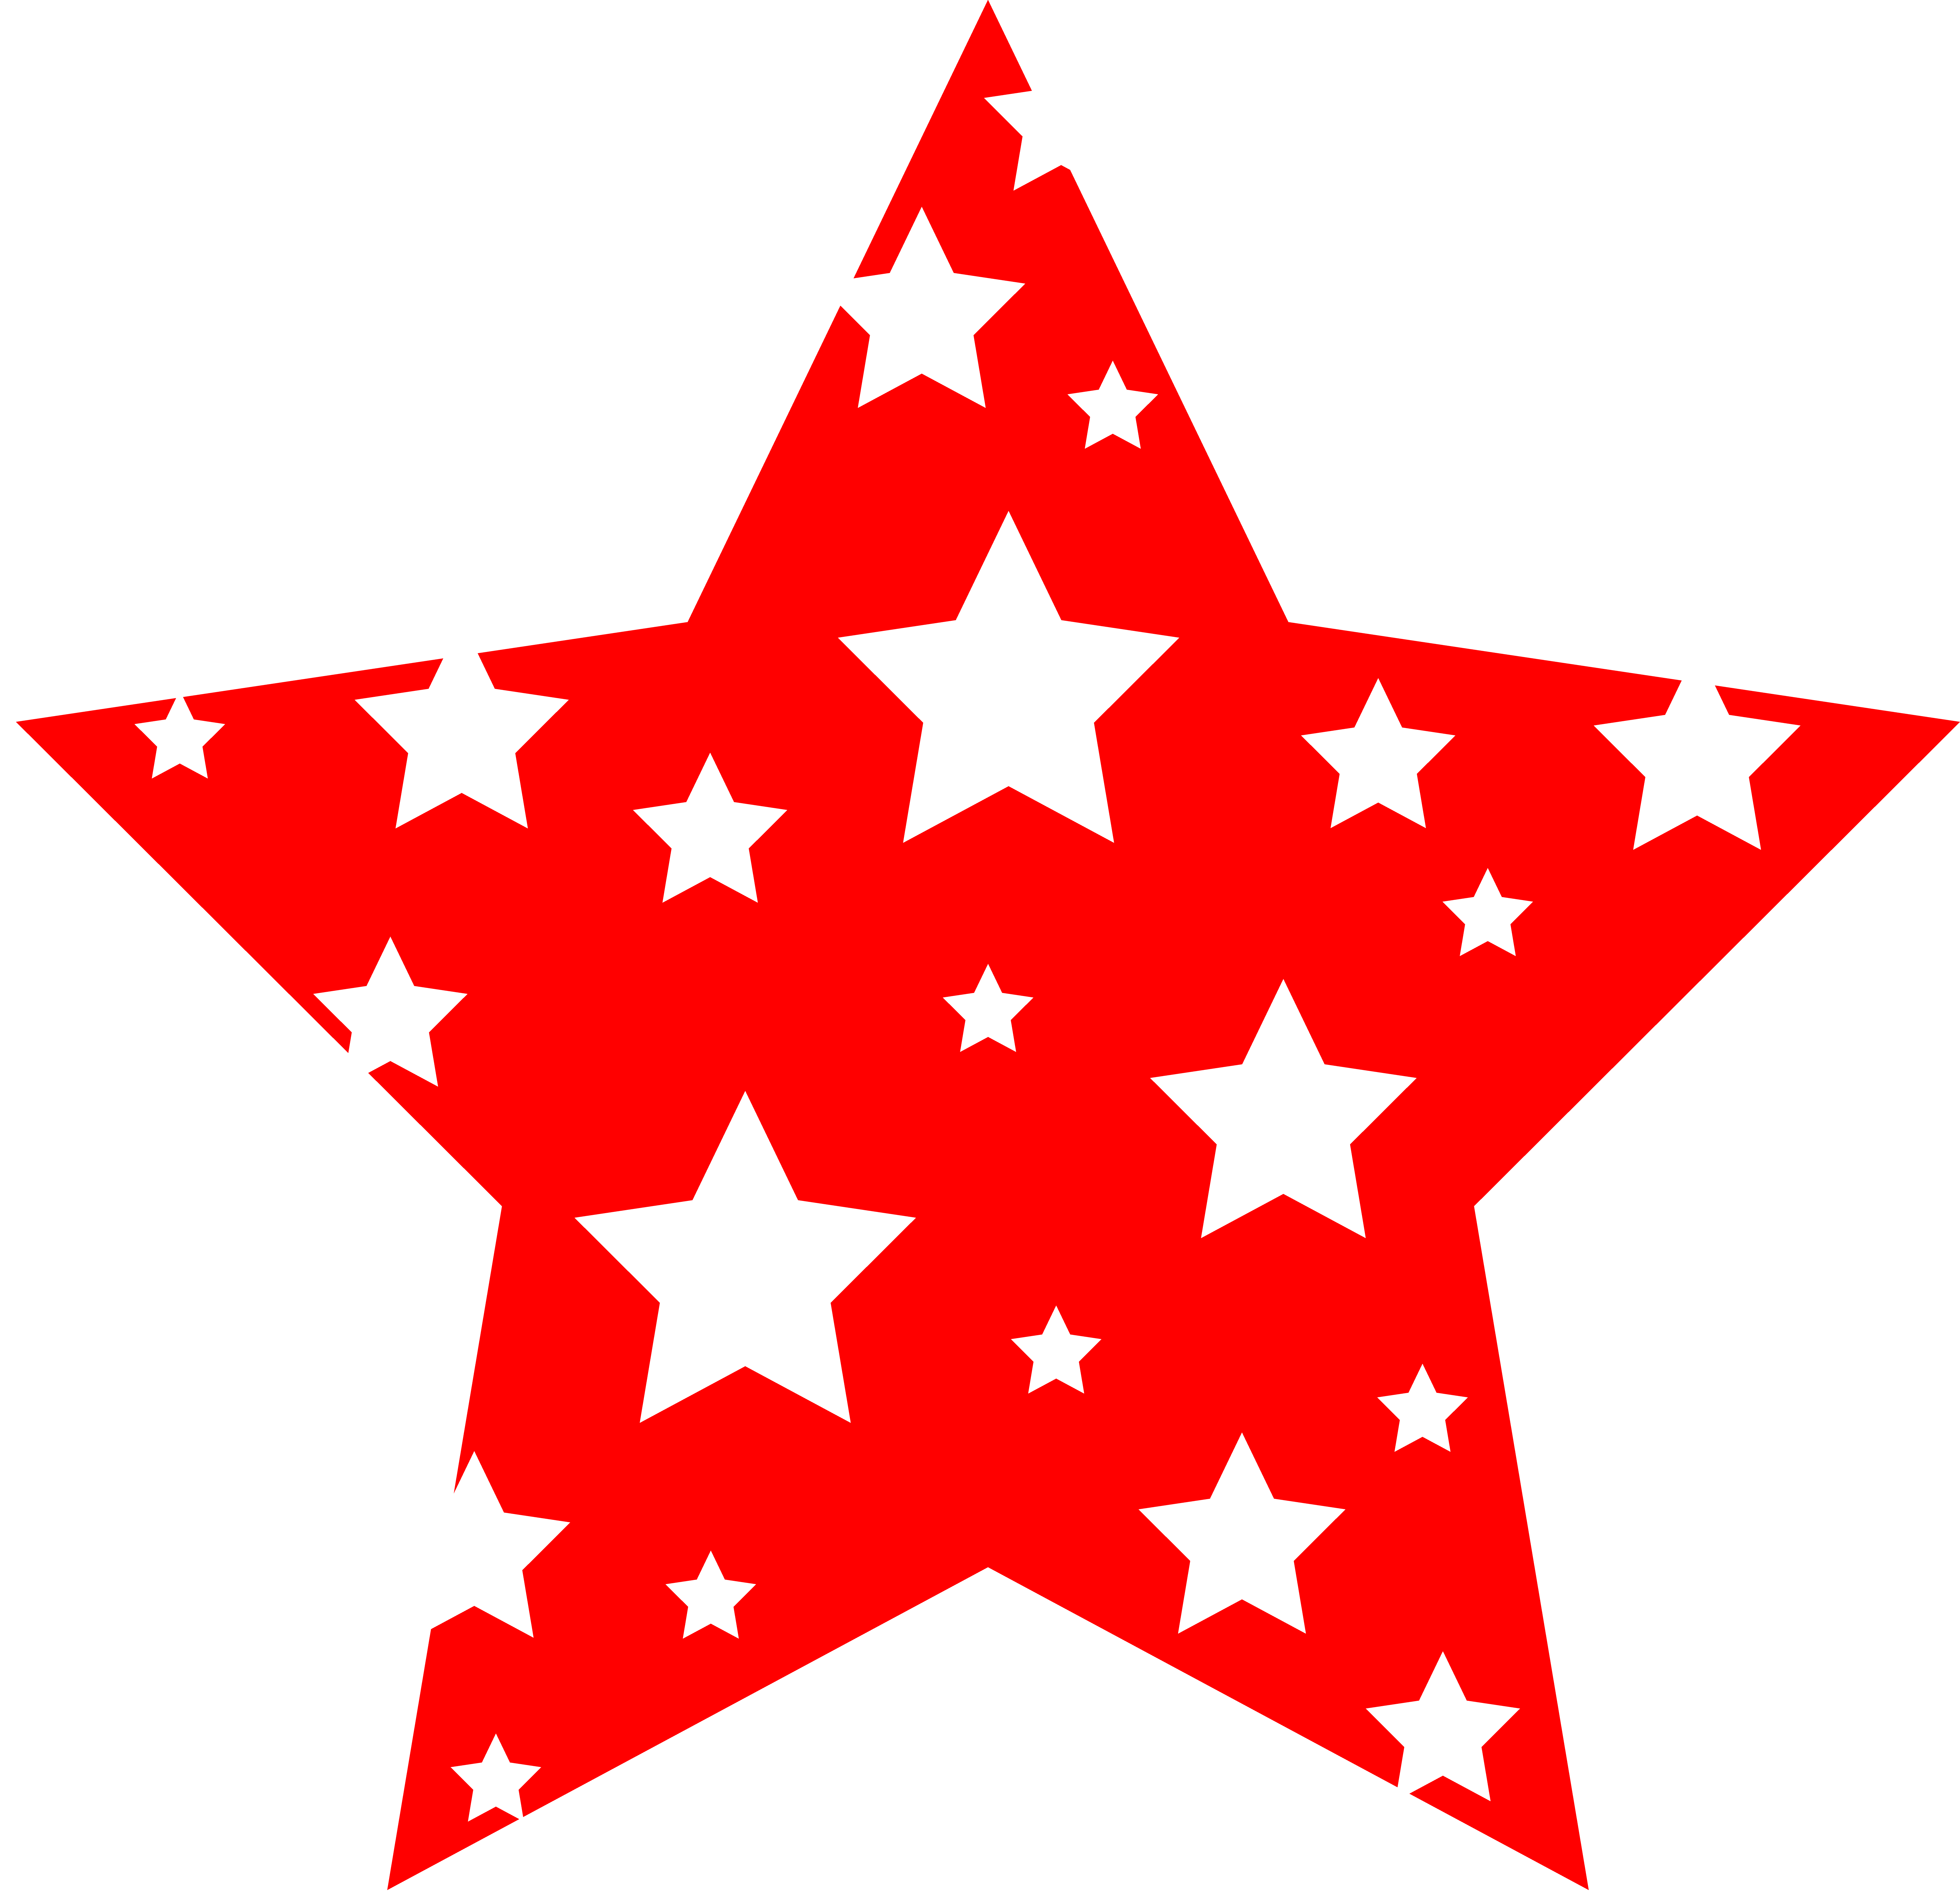 Free clipart star black and white library Clipart Stars | Clipart Panda - Free Clipart Images black and white library